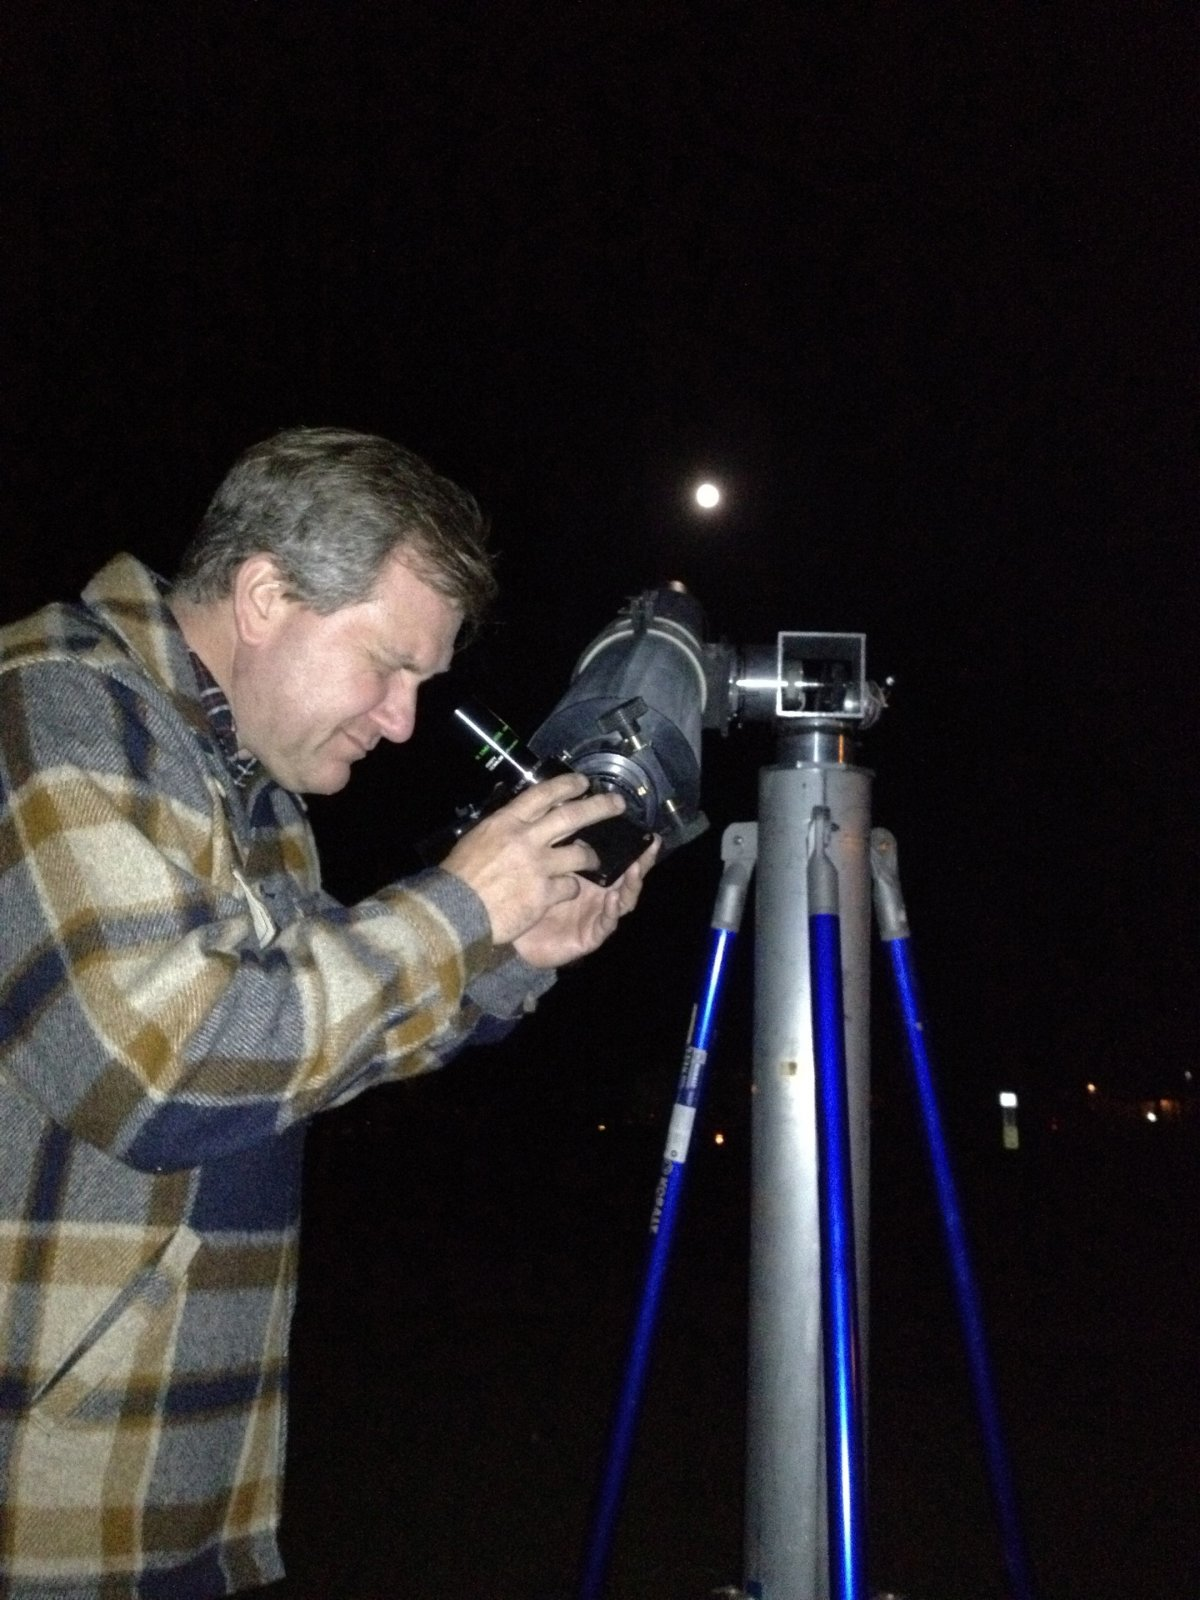 Click image for larger version  Name:Mike checking out Jupiter.jpg Views:49 Size:257.9 KB ID:149833